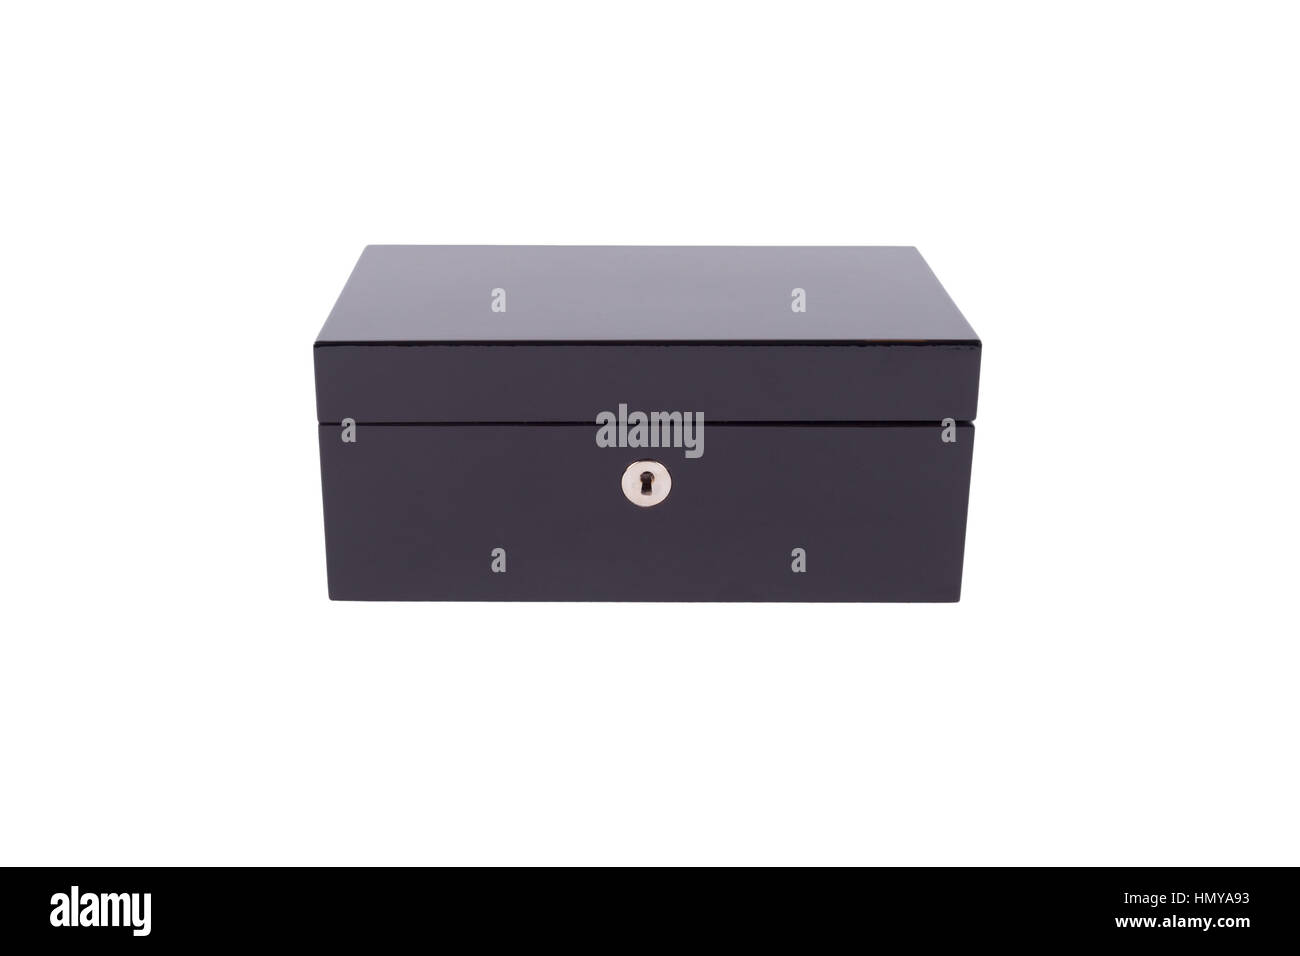 The black box is a locked on a white background - Stock Image